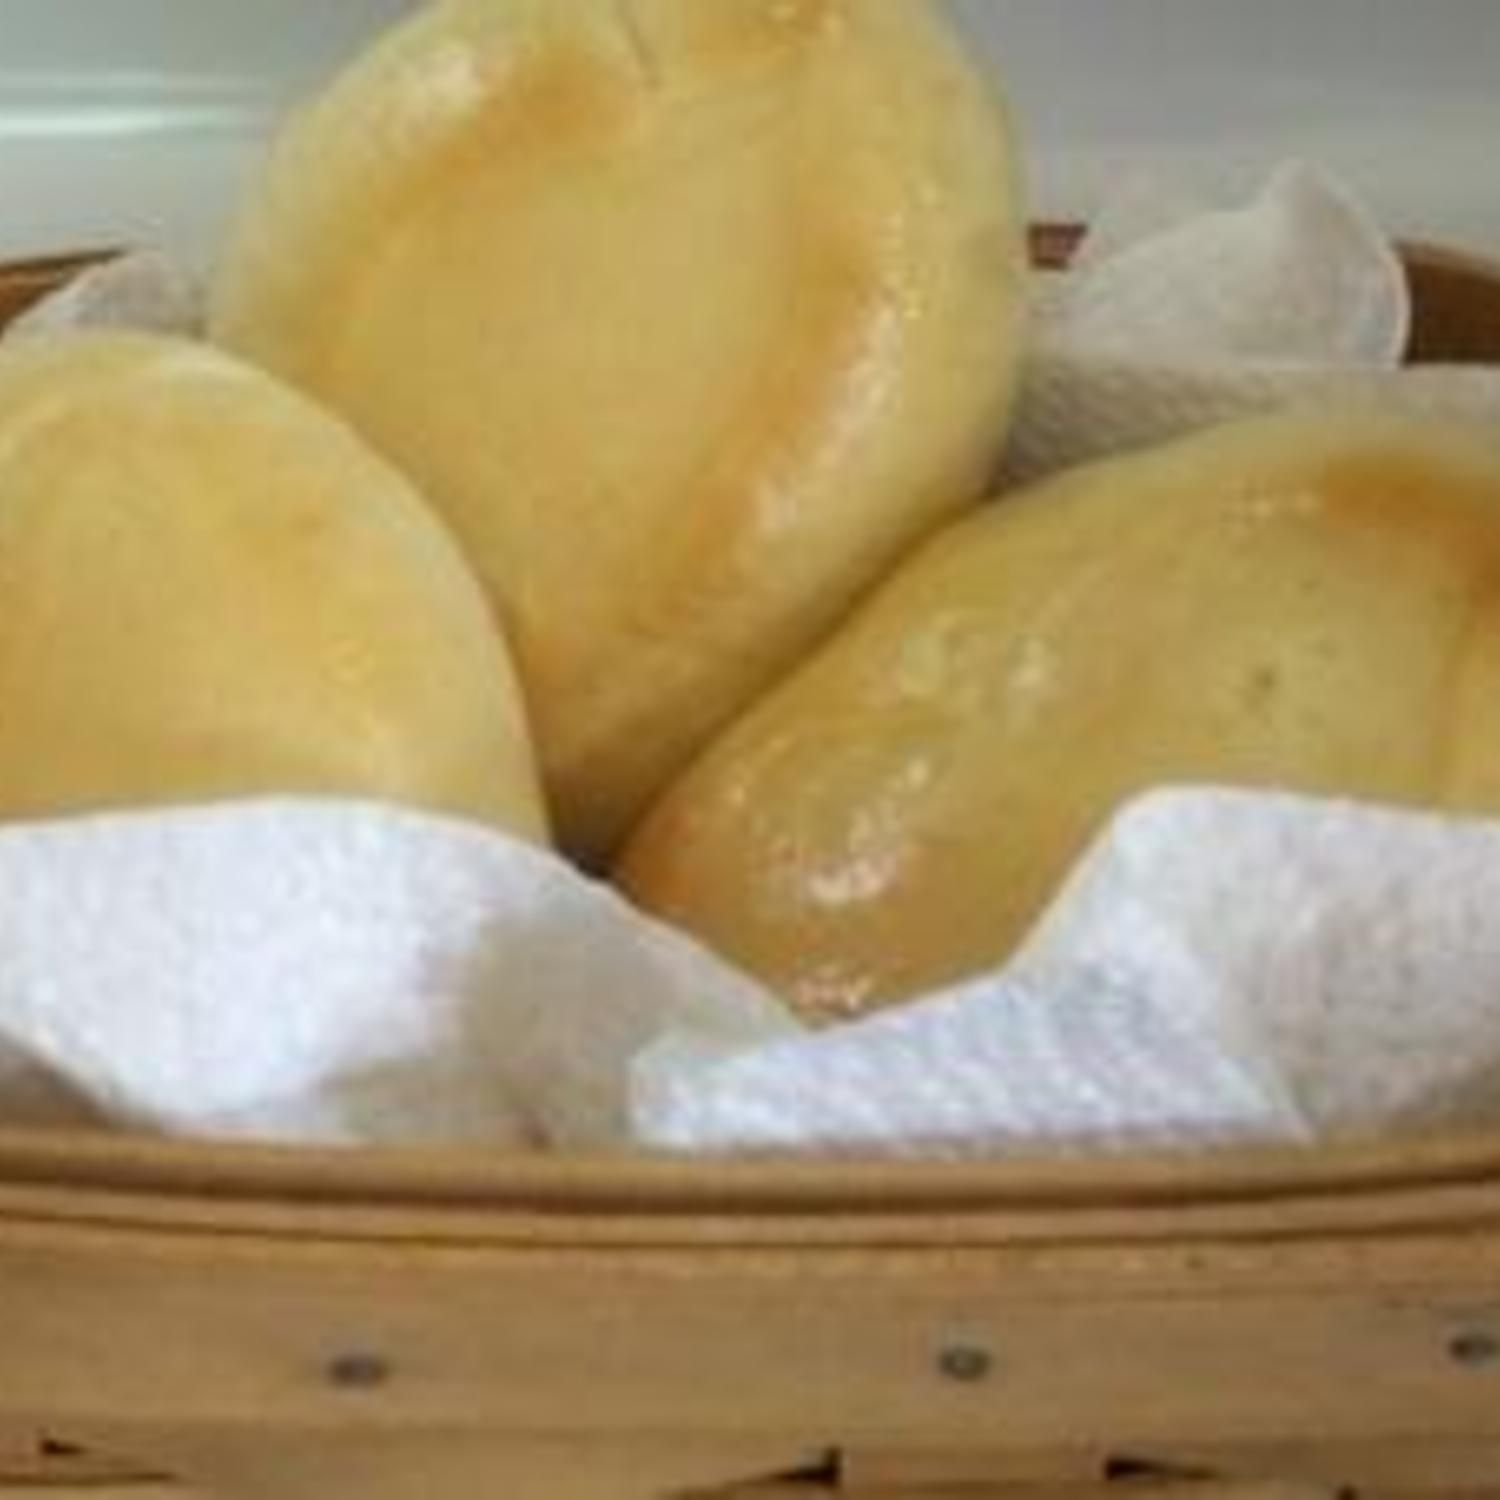 Texas Roadhouse Easy Sweet Yeast Roll Recipe To Mix In A Bread Machine Just A Pinch Recipes With Images Sweet Yeast Rolls Recipe Yeast Rolls Recipe Bread Machine Recipes